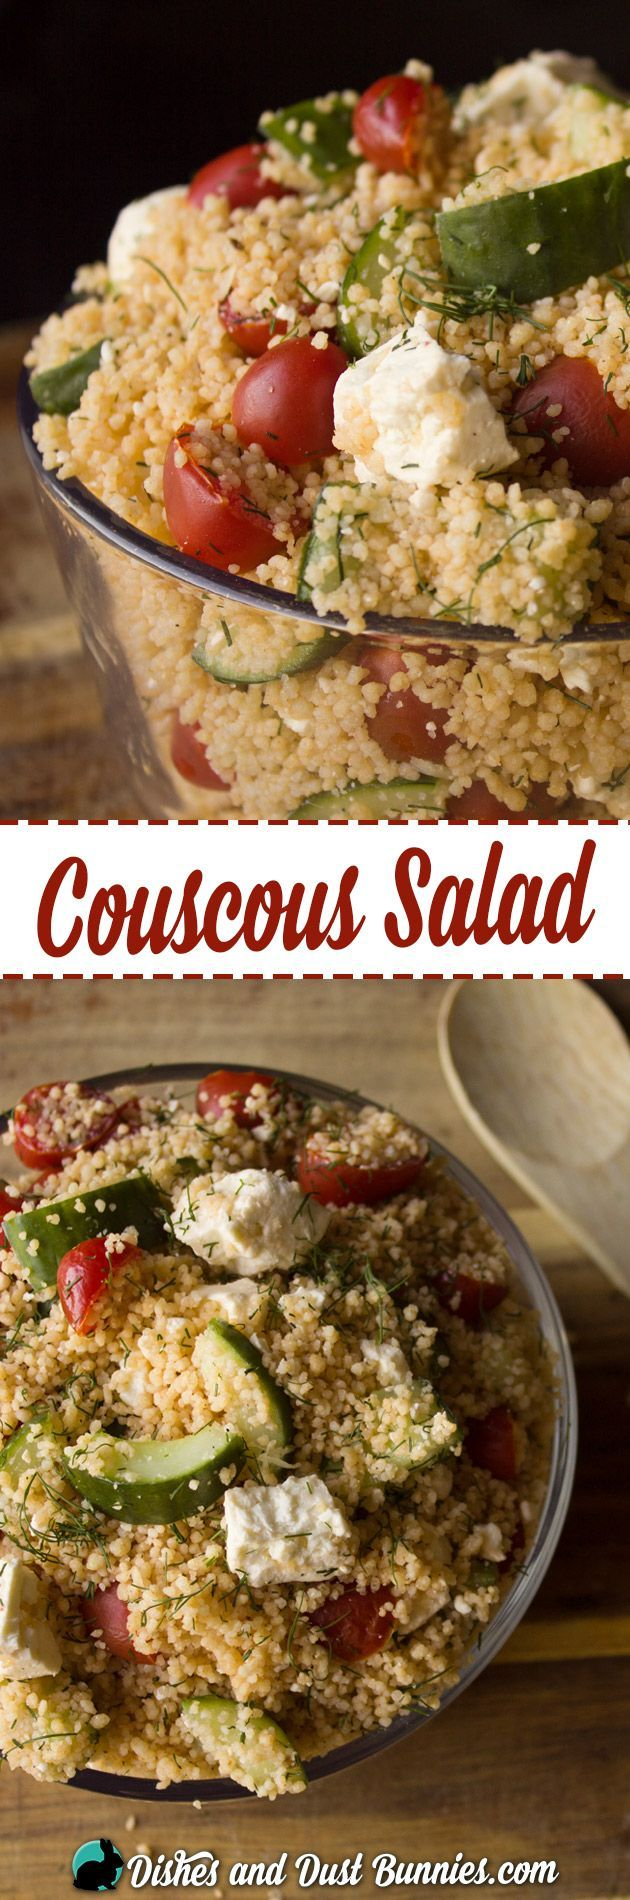 Couscous Salad with Tomatoes, Cucumbers and Feta from http://dishesanddustbunnies.com